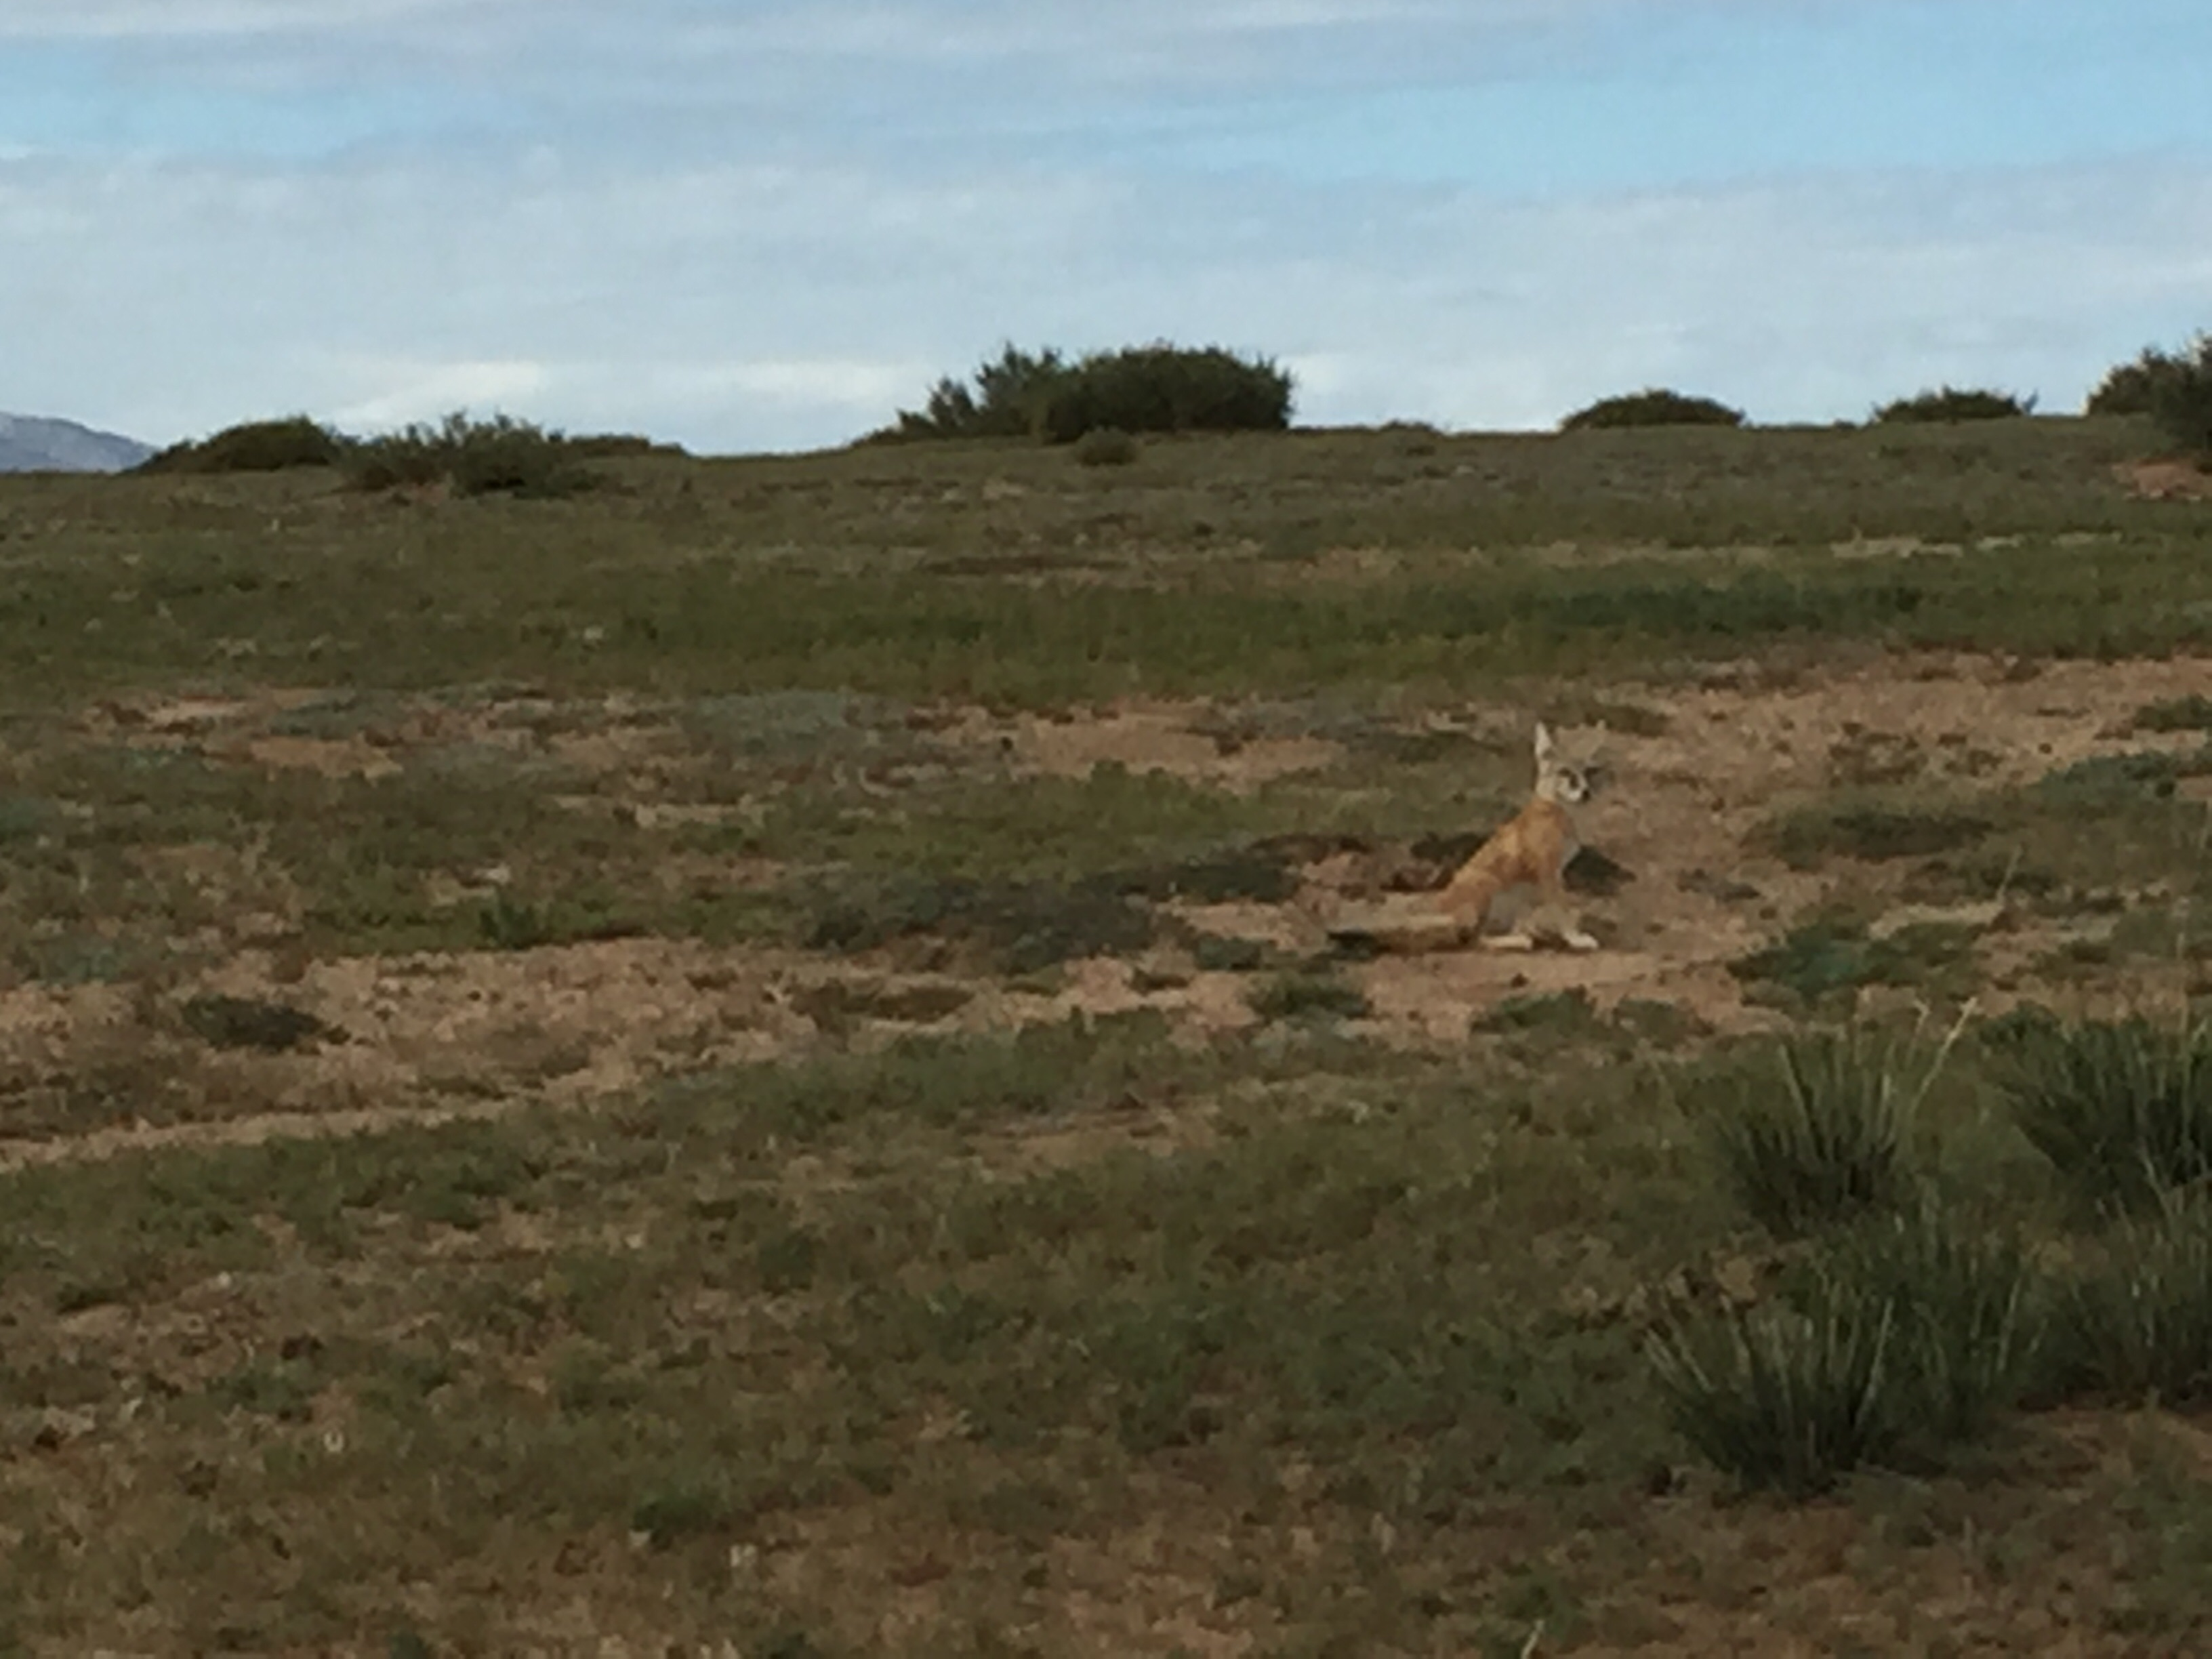 Unfortunately, none of my pictures turned out well. But that's a fox, hanging out, not 100 feet from the road.